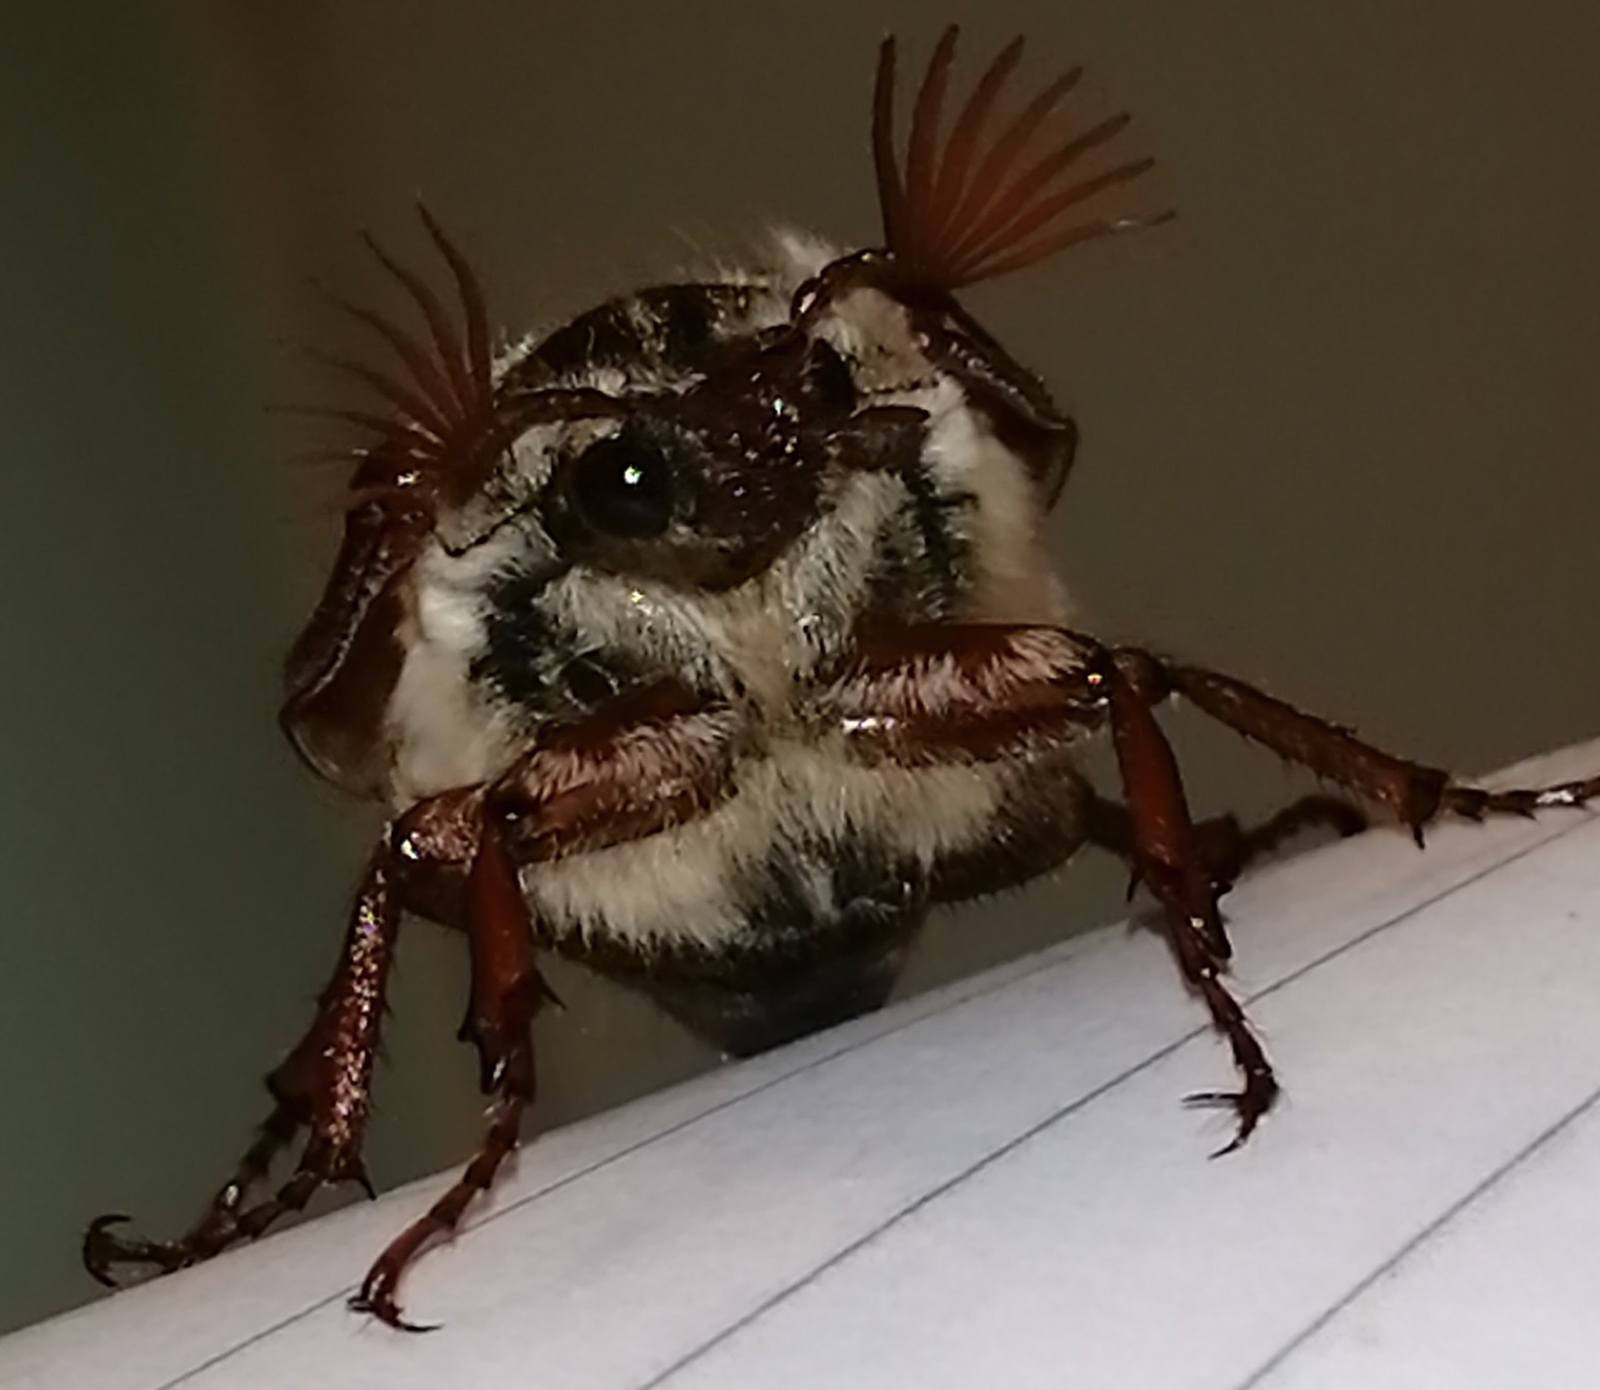 A photo of a May Bug